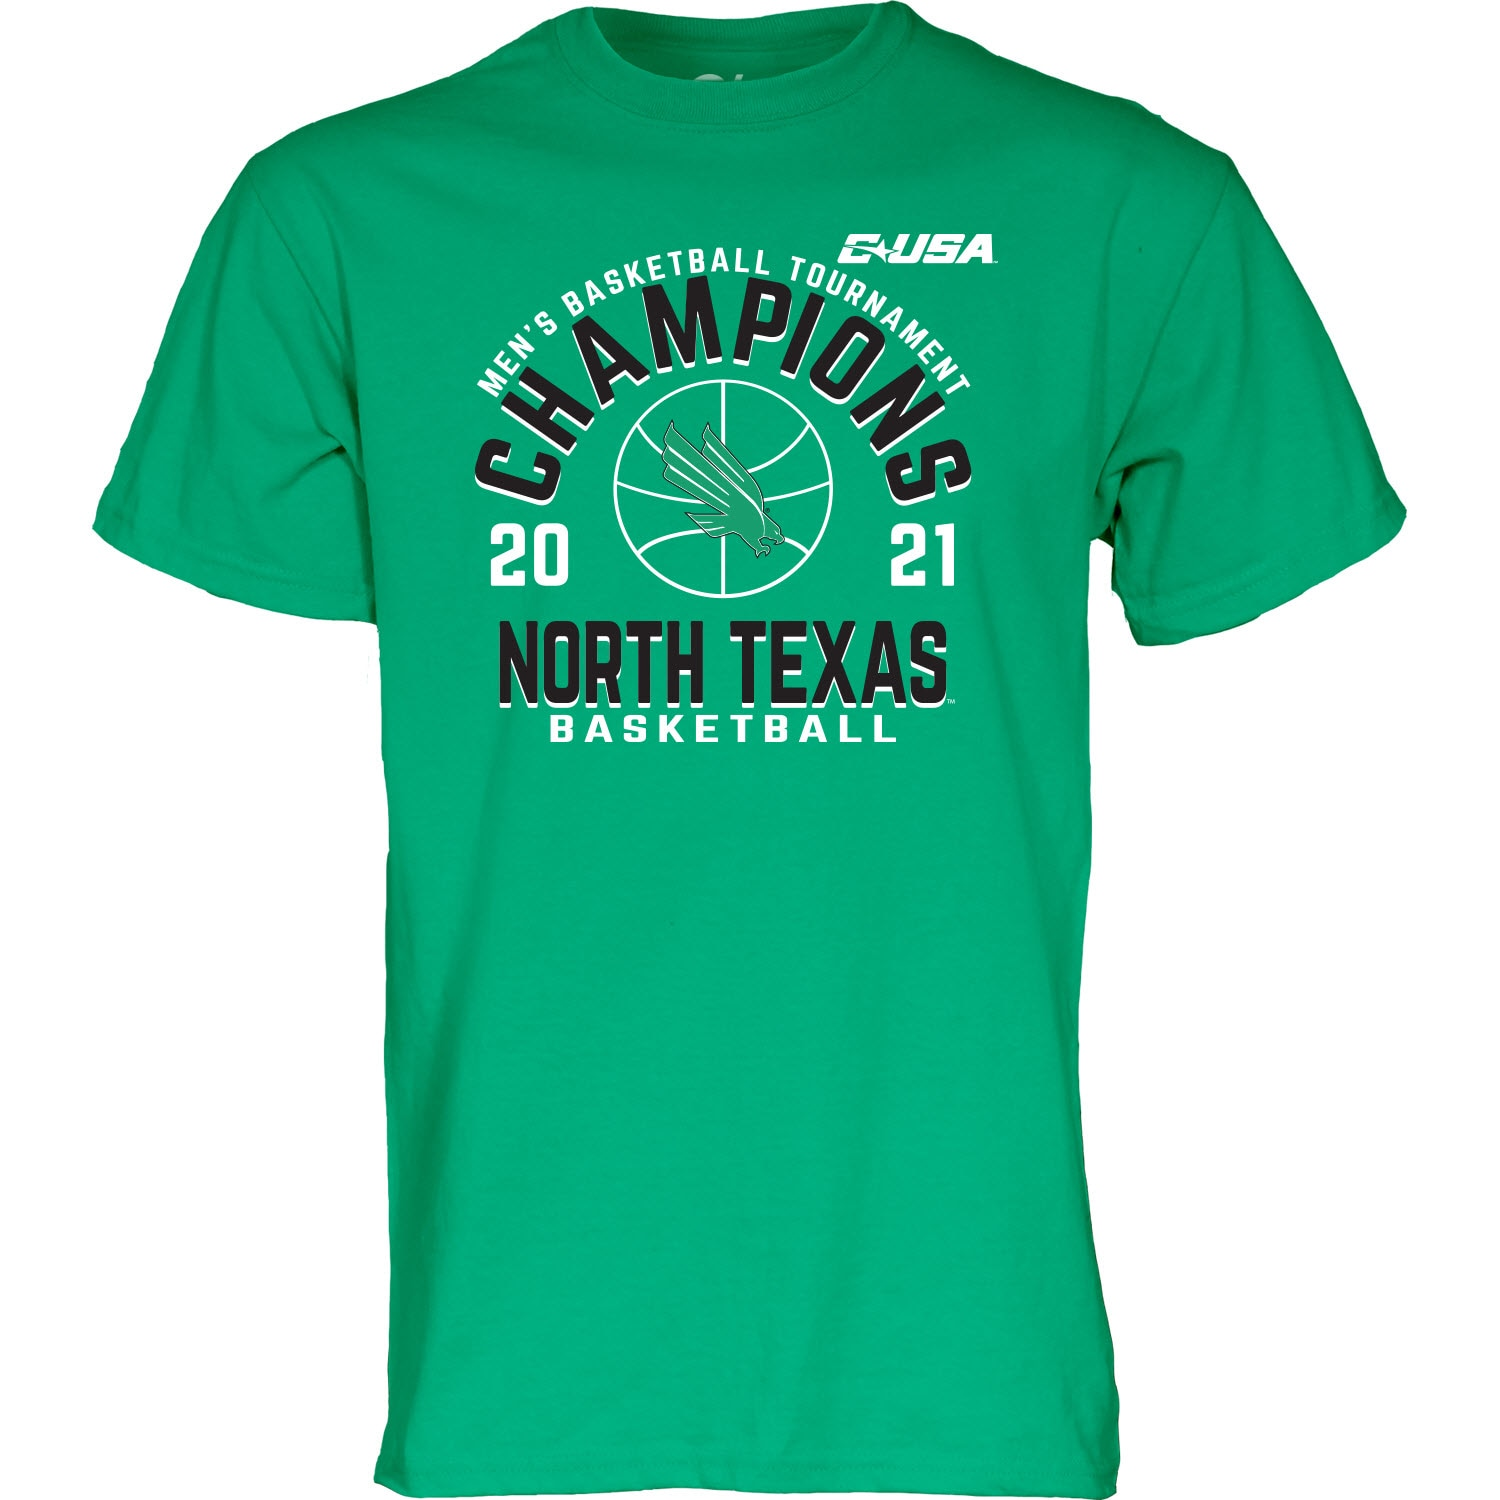 University of North Texas Blue84 2021 Basketball Conference Champs T Shirt